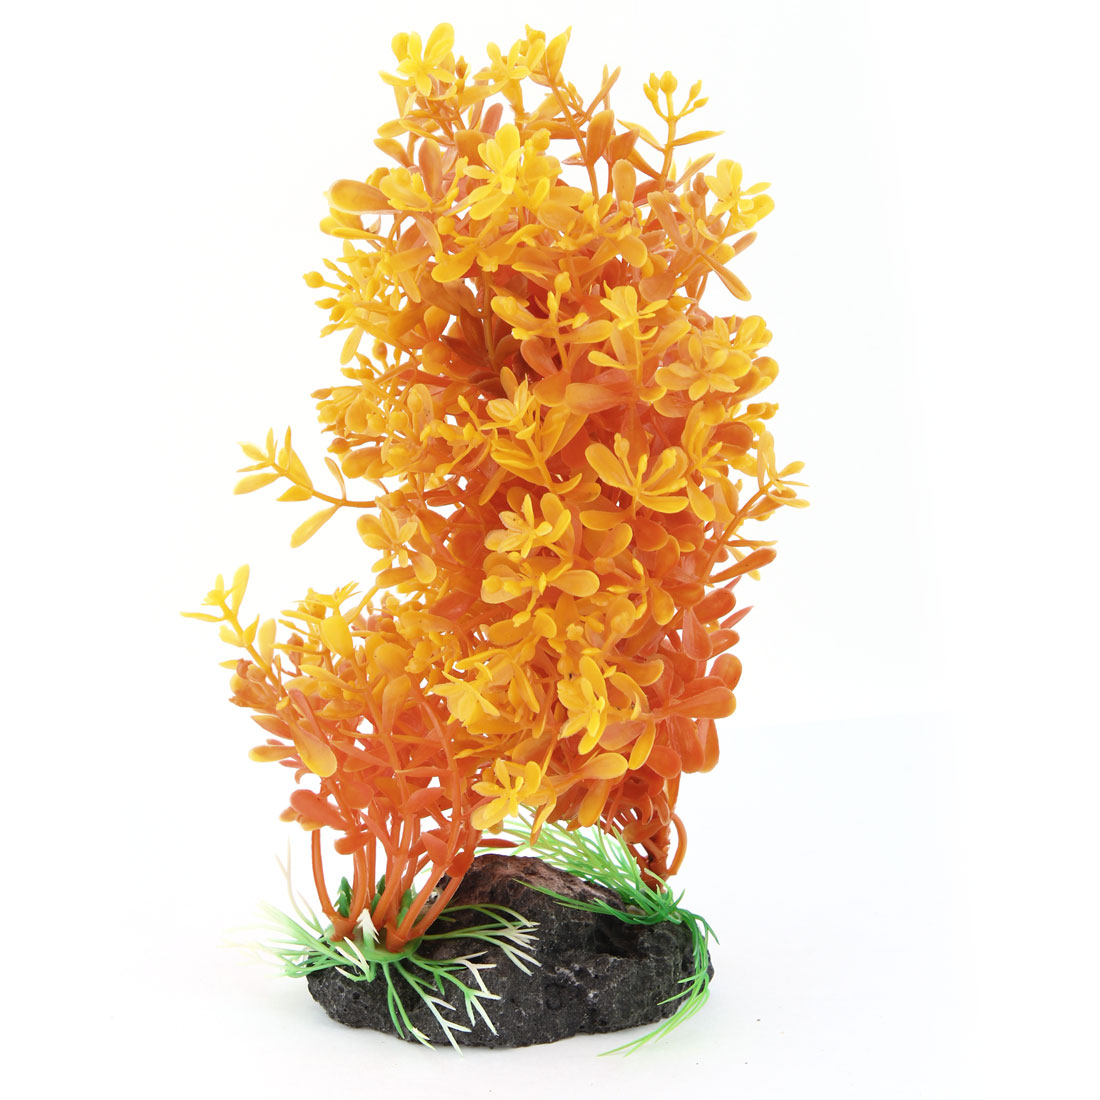 "7.7"" High Orange Artificial Plastic Plants Grass for Fish Tank Aquarium"